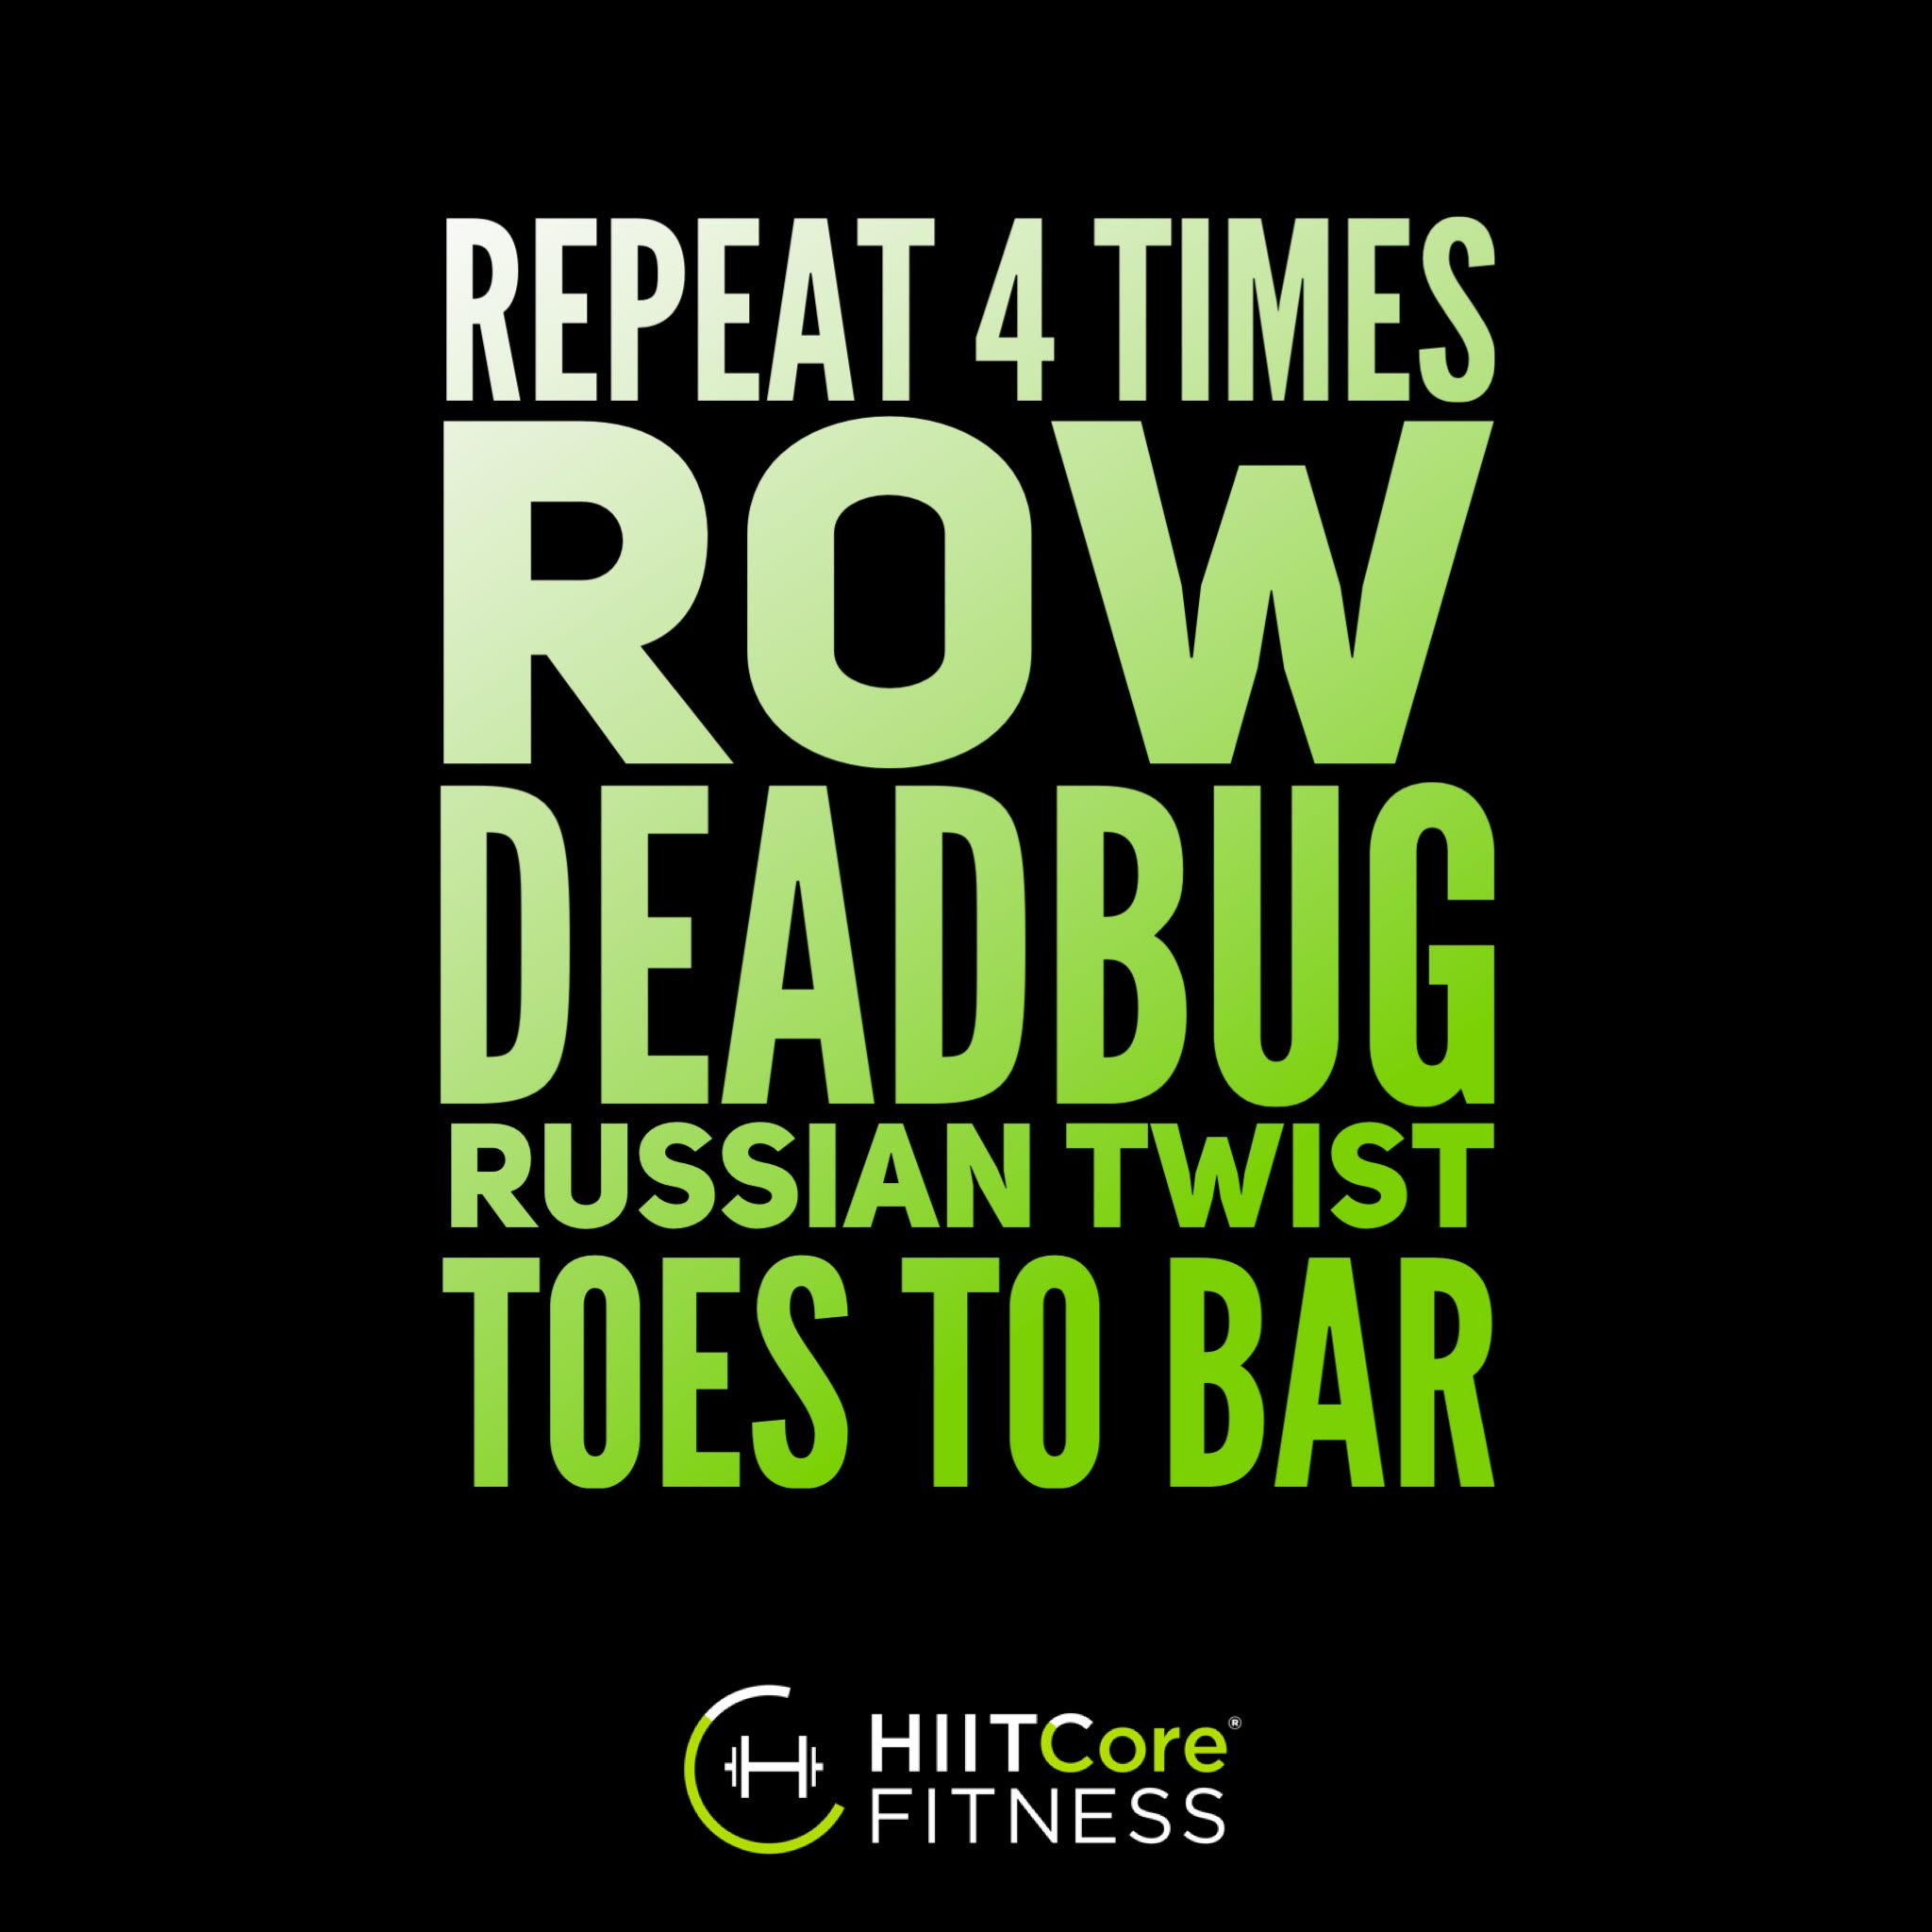 Row Deadbug Russian Twist Toes to Bar Workout